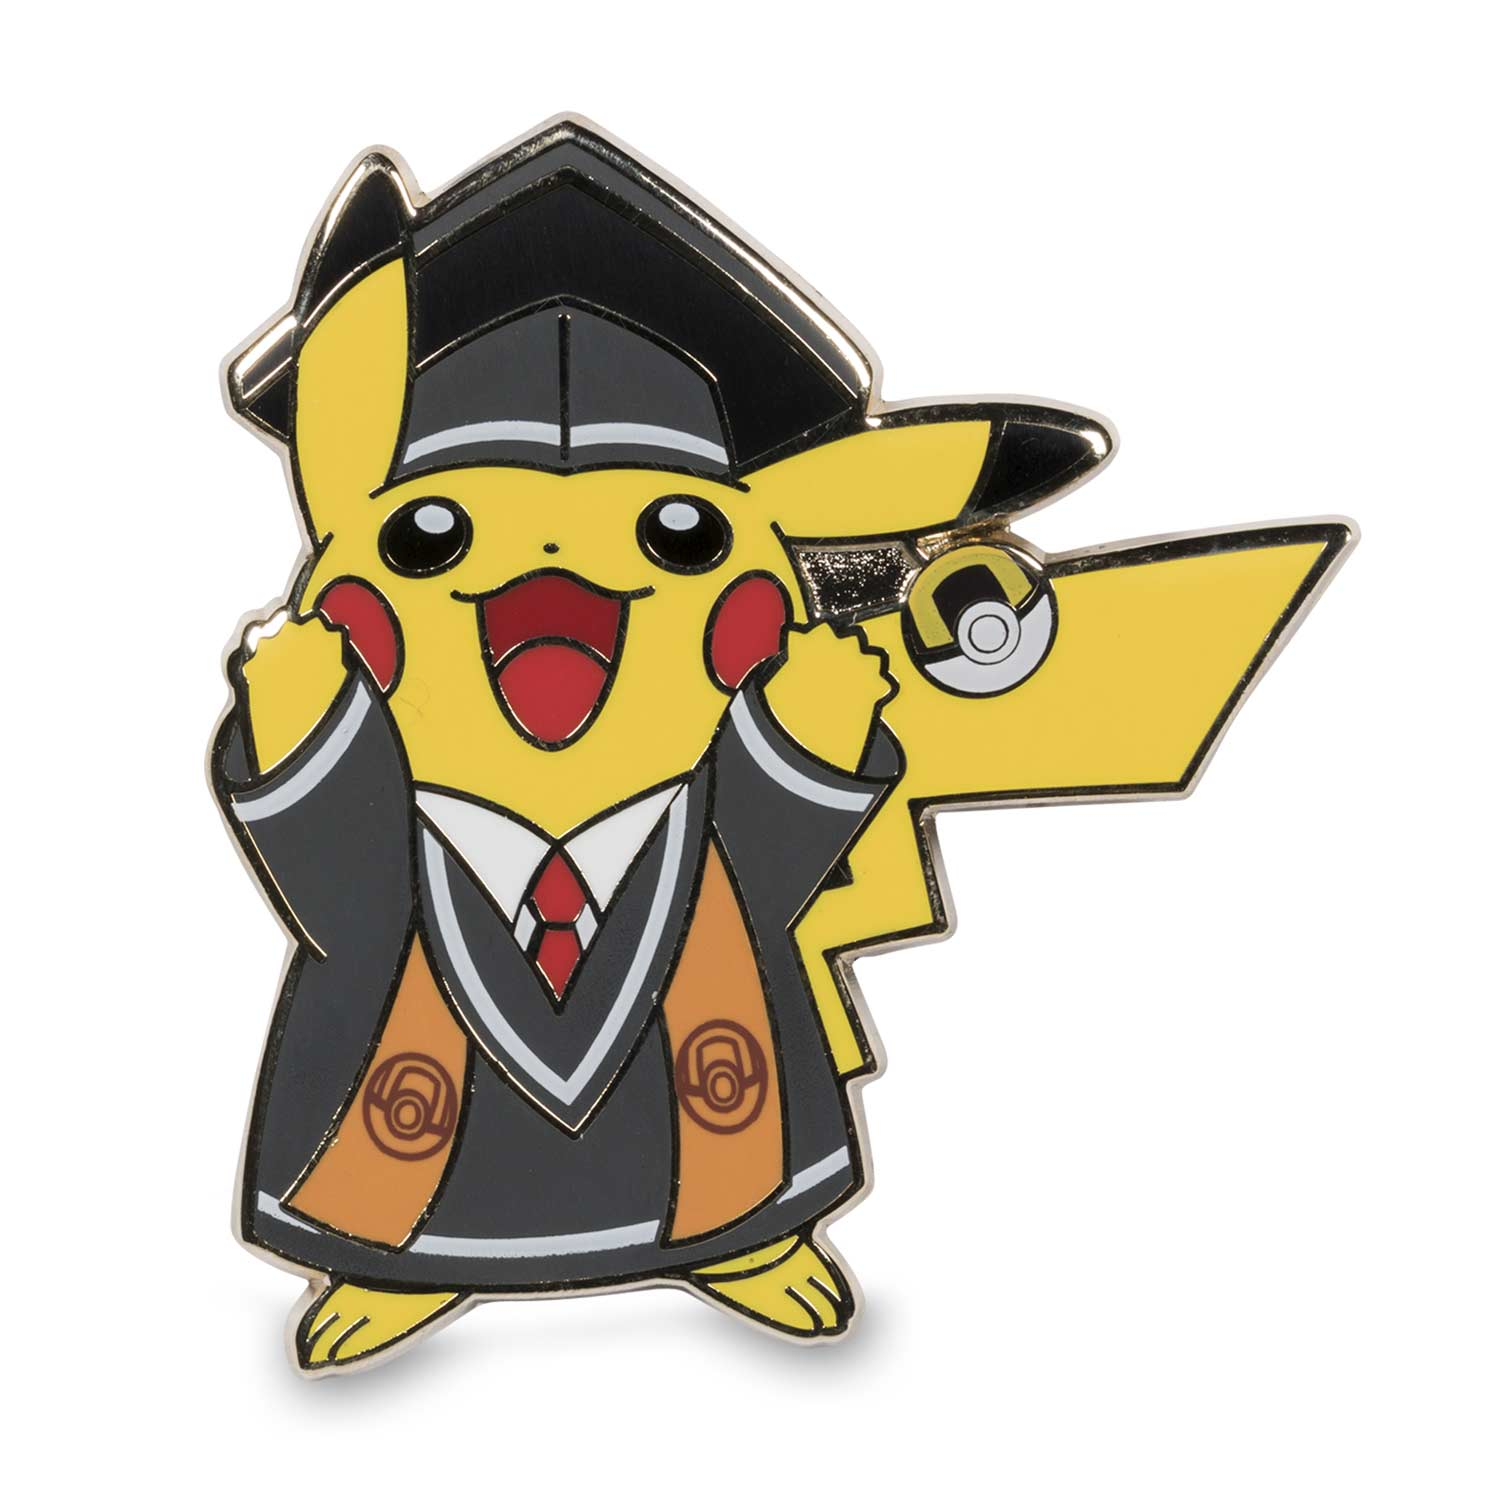 Graduation Pikachu Pokmon Pins 2 Pack With Greeting Card